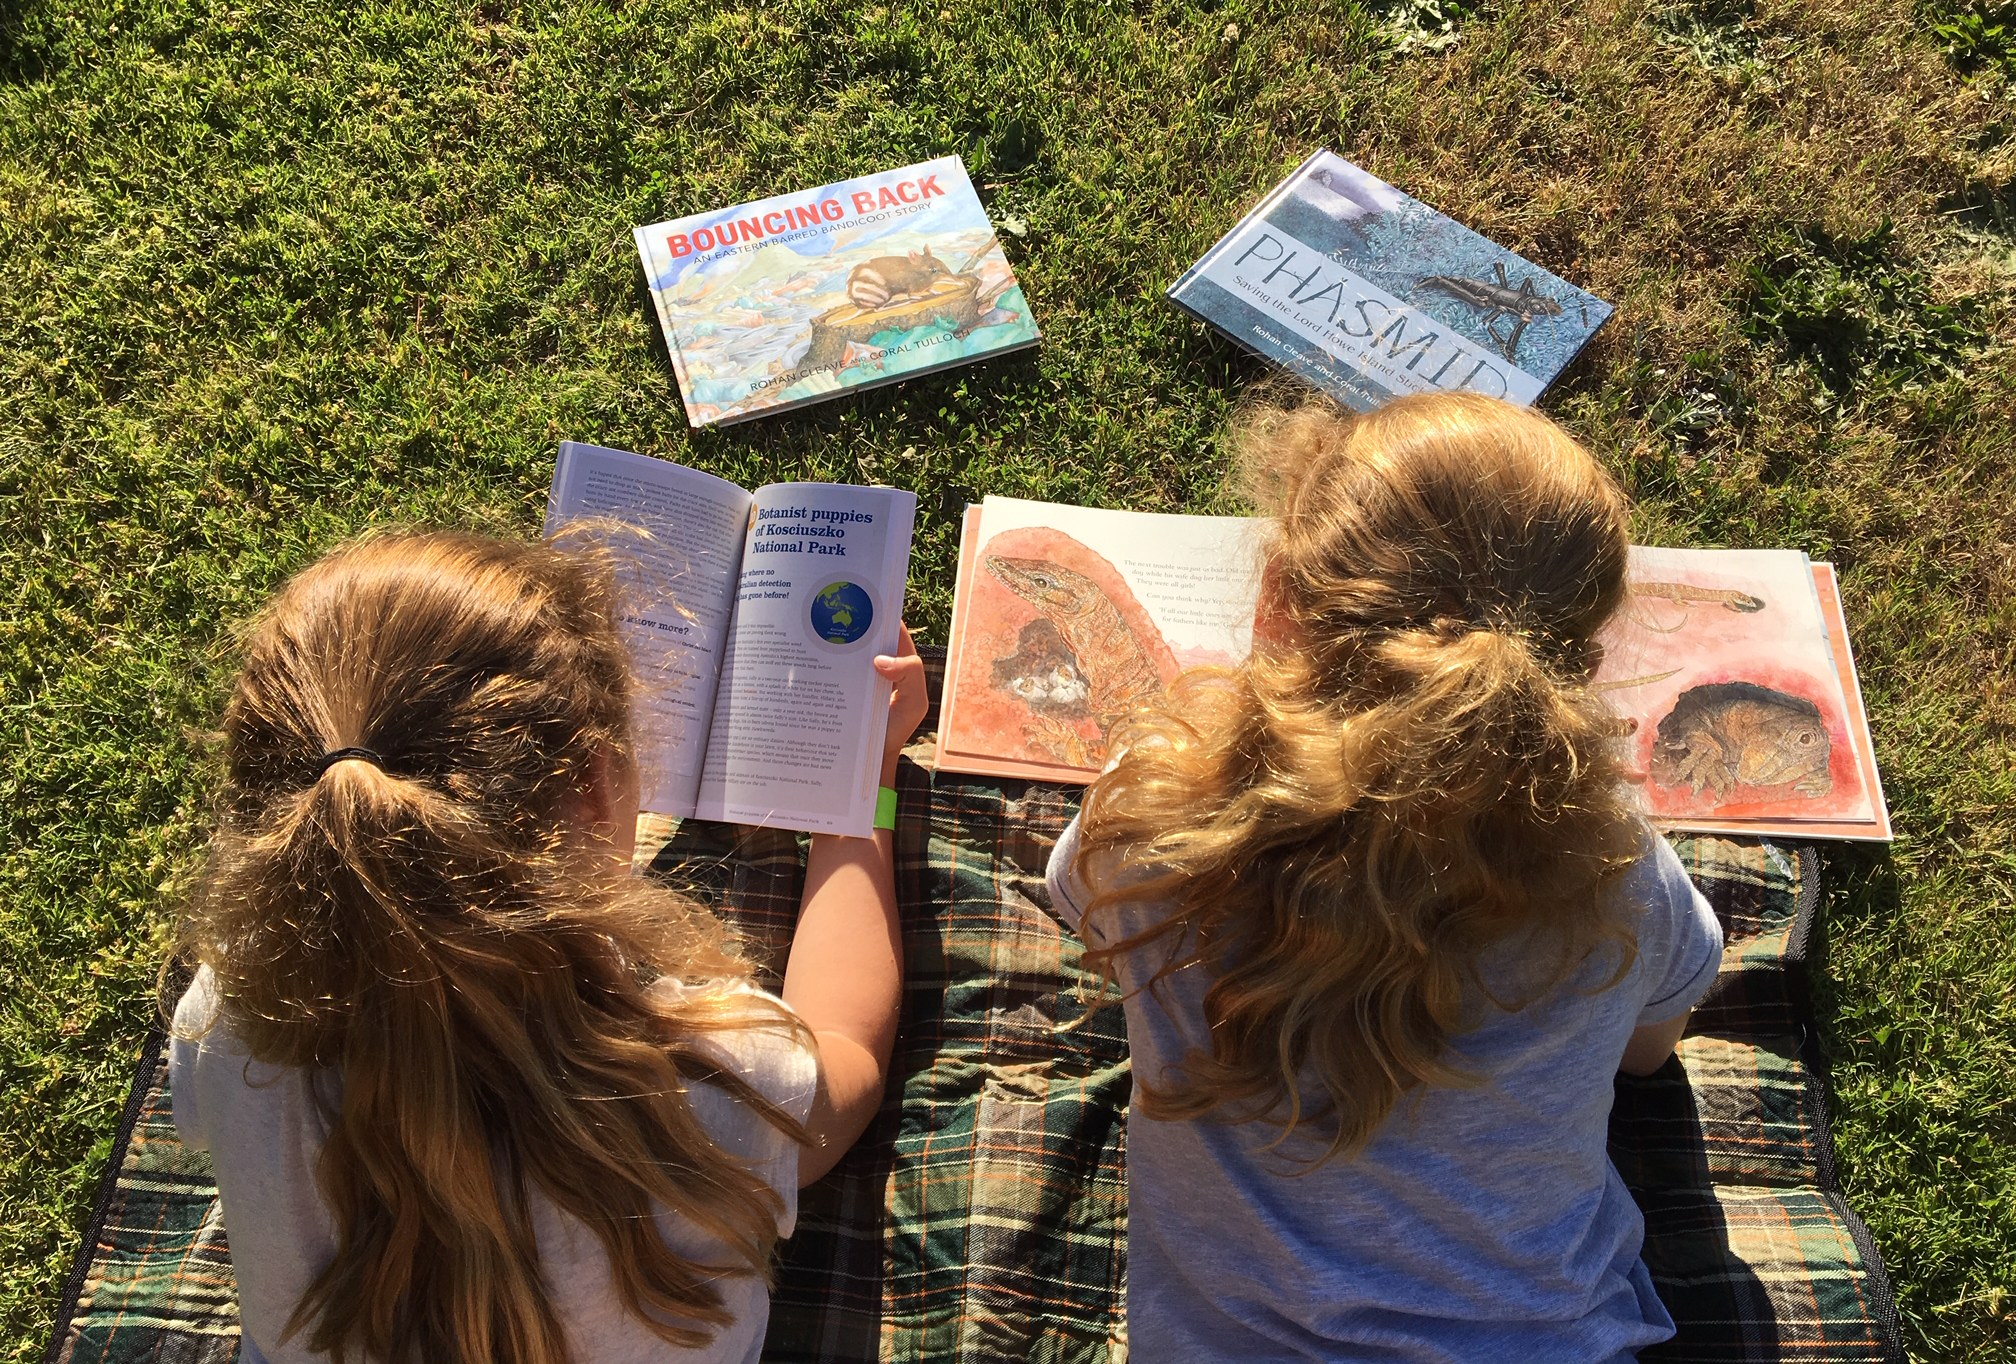 Two children reading books on the grass. photo taken from above